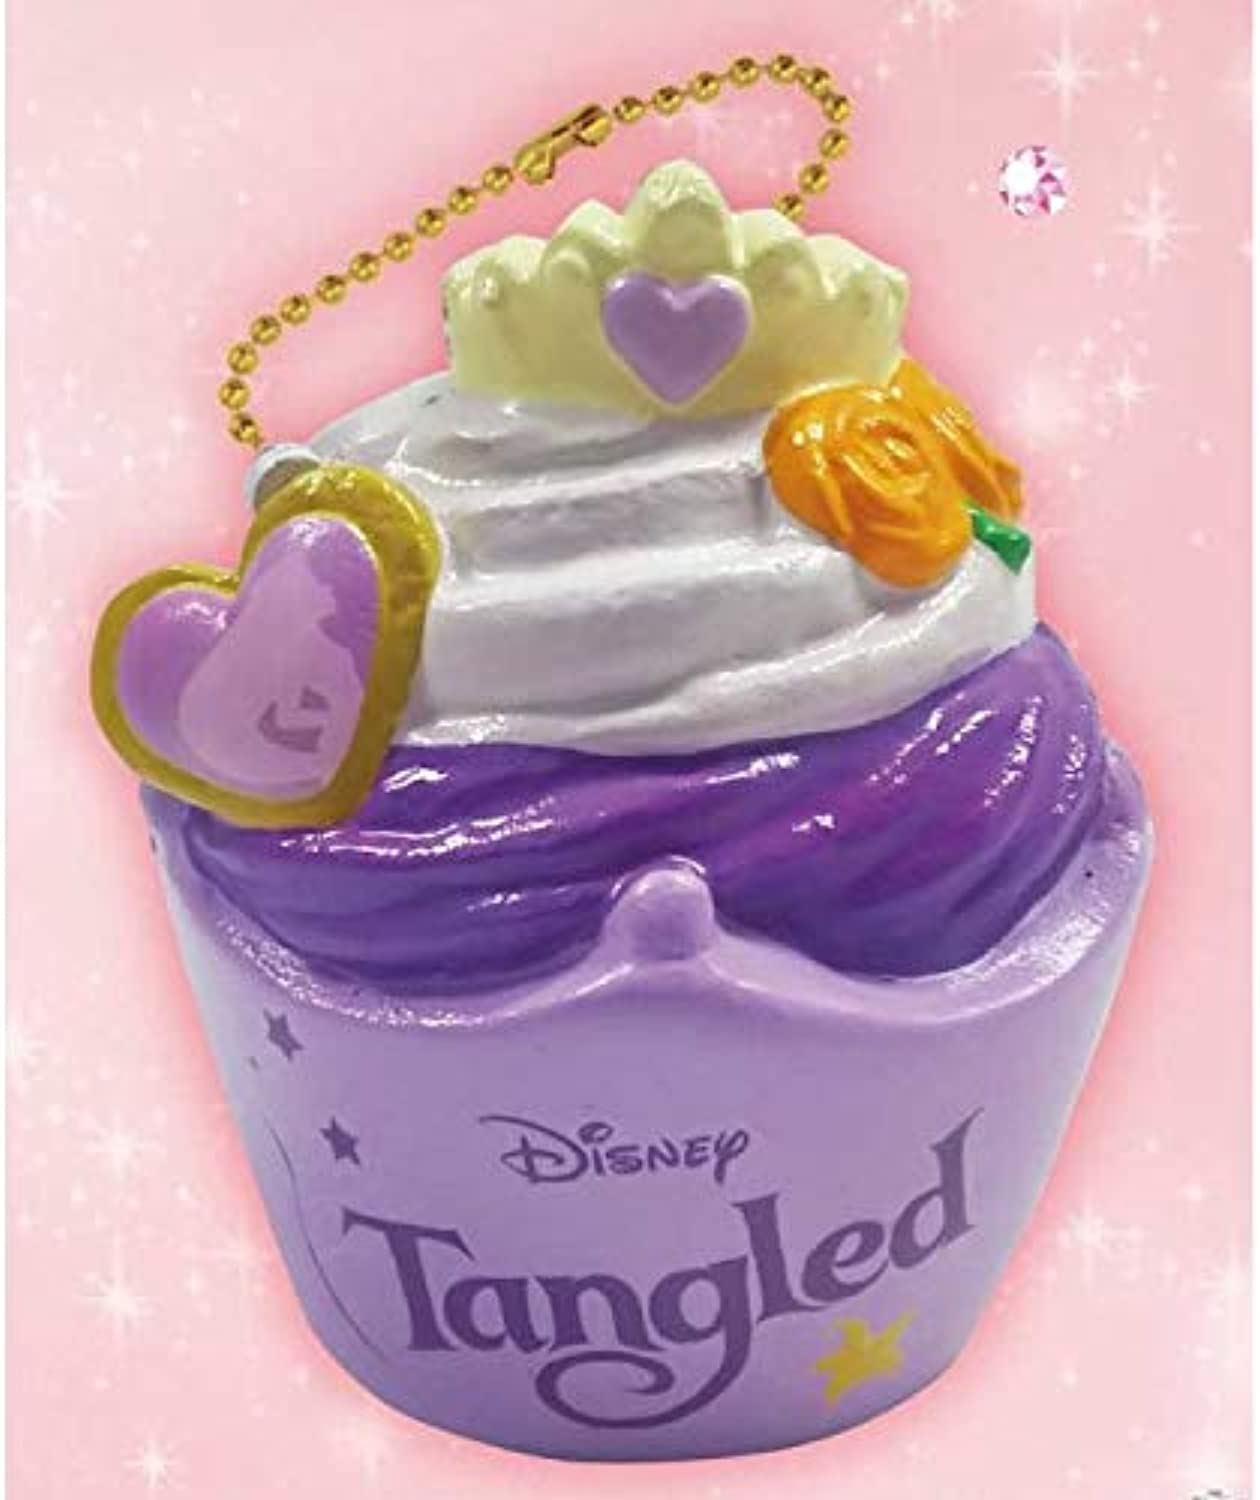 Disney Tangled Punipuni Mascot Ball with Chain (Rapunzel)